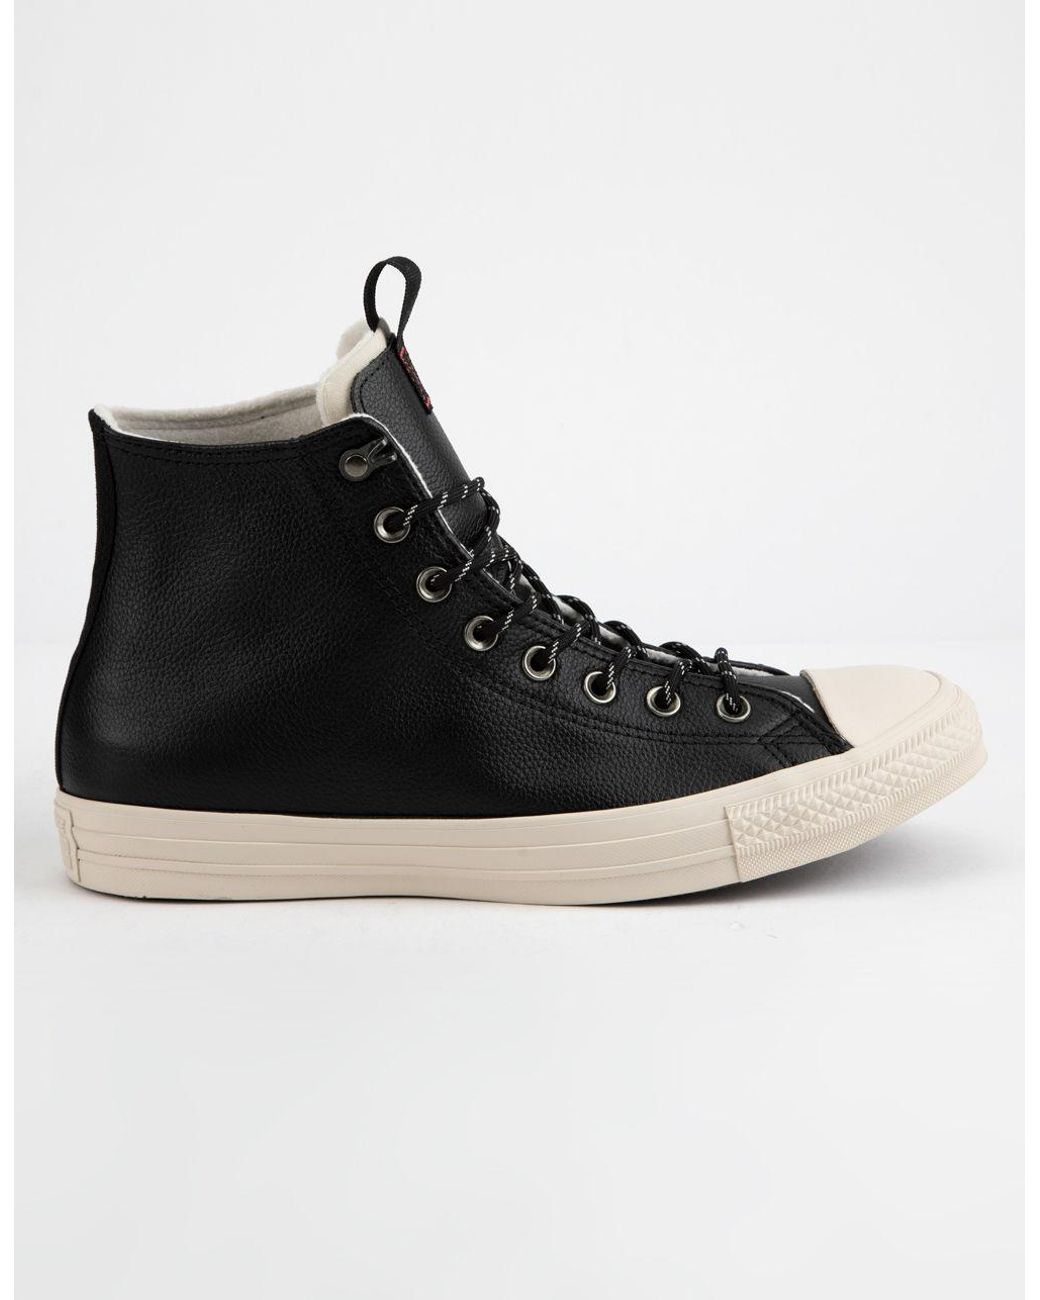 Brown leather converse chuck taylor all star fleece inner